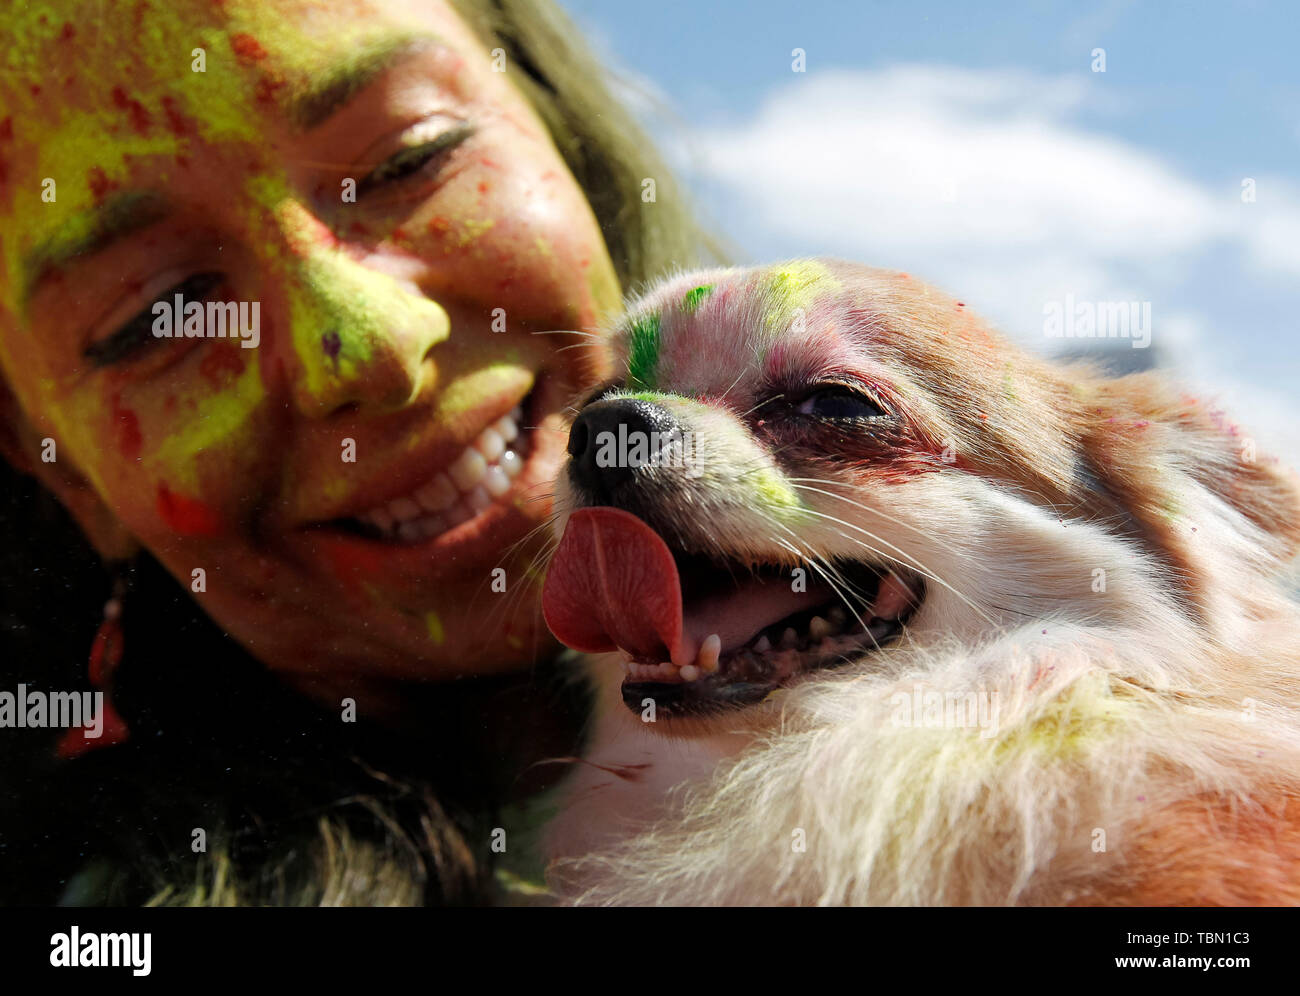 woman and her dog showered in colours during the run. The Color Run, also known as 'the happiest 5,000 meters on the planet', is an event series and paint race, its first event was in the United States in January 2012 since then the run has spread across the globe leaving a trail of color and happy runners across different continents and countries. The untimed event has no winners or prizes, but runners are showered with colored powder, made of food-grade corn starch, at stations along the run. In Ukrainian capital the first time Kyiv Color Run started in 2014. - Stock Image